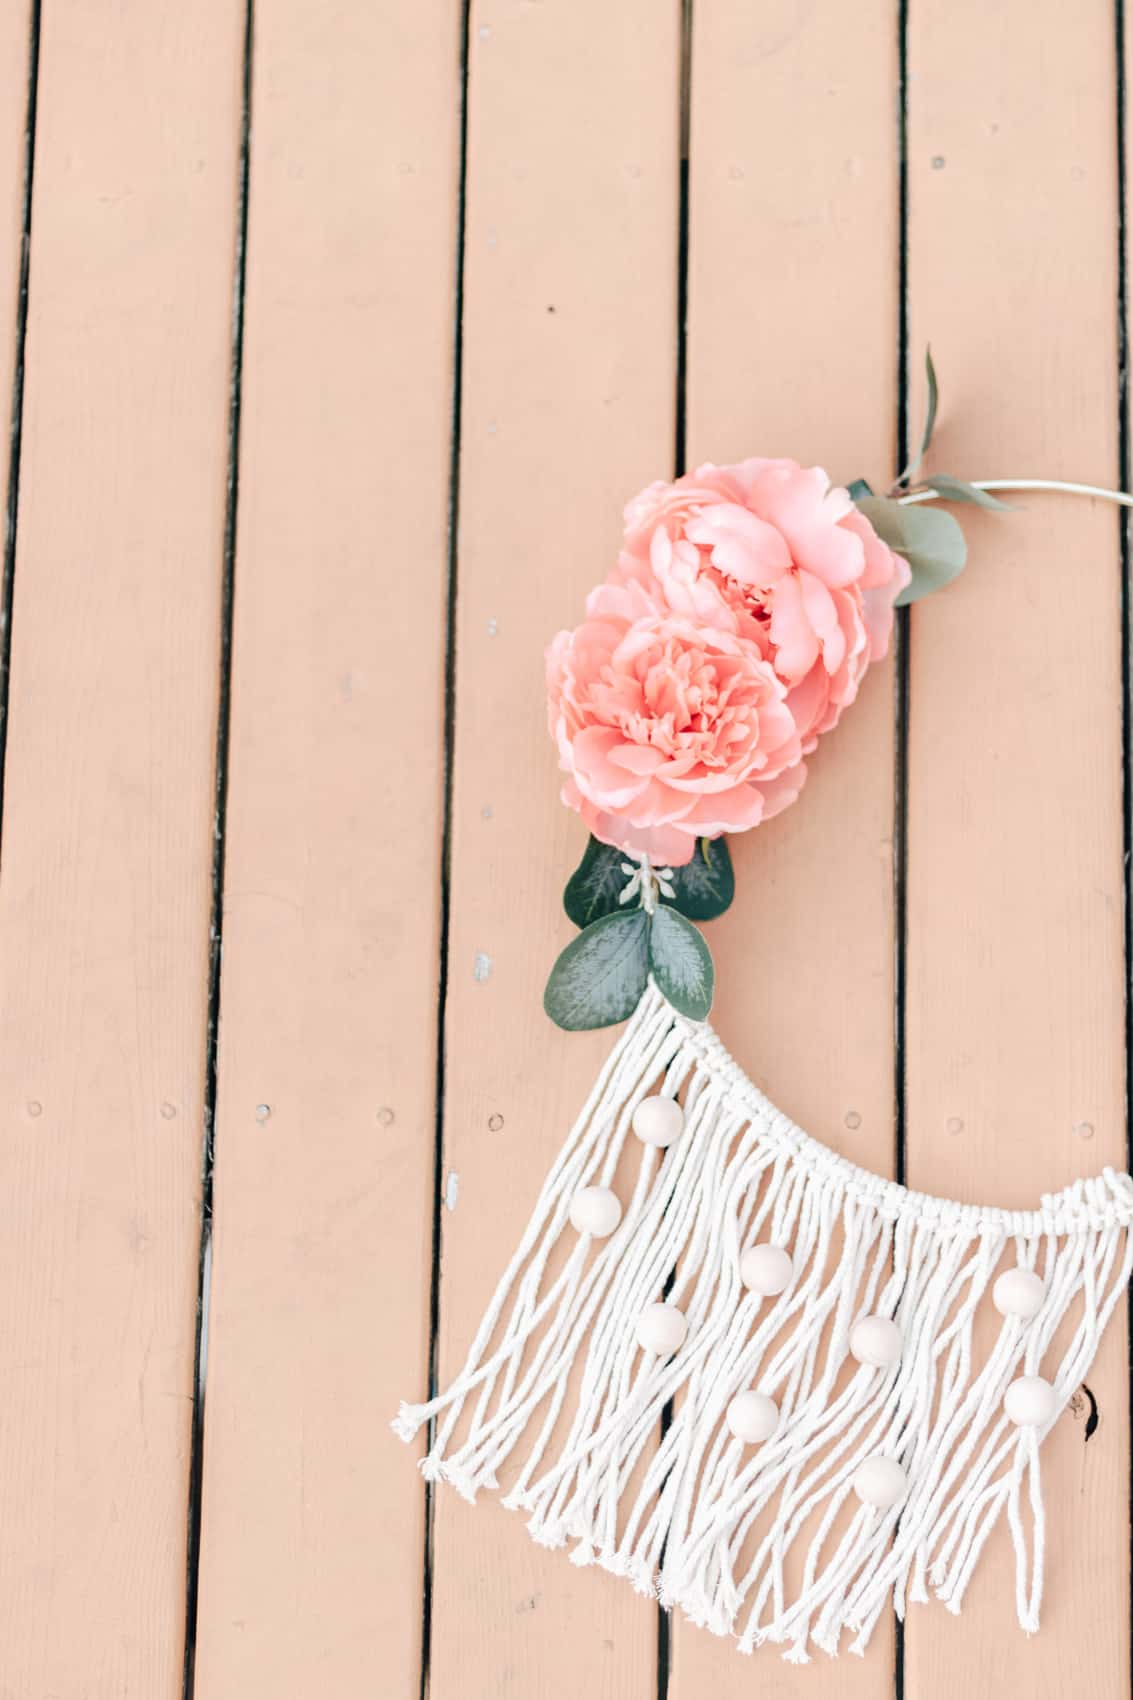 Diy Wall Flowers: The Easiest DIY Wall Hanging (with Beads)